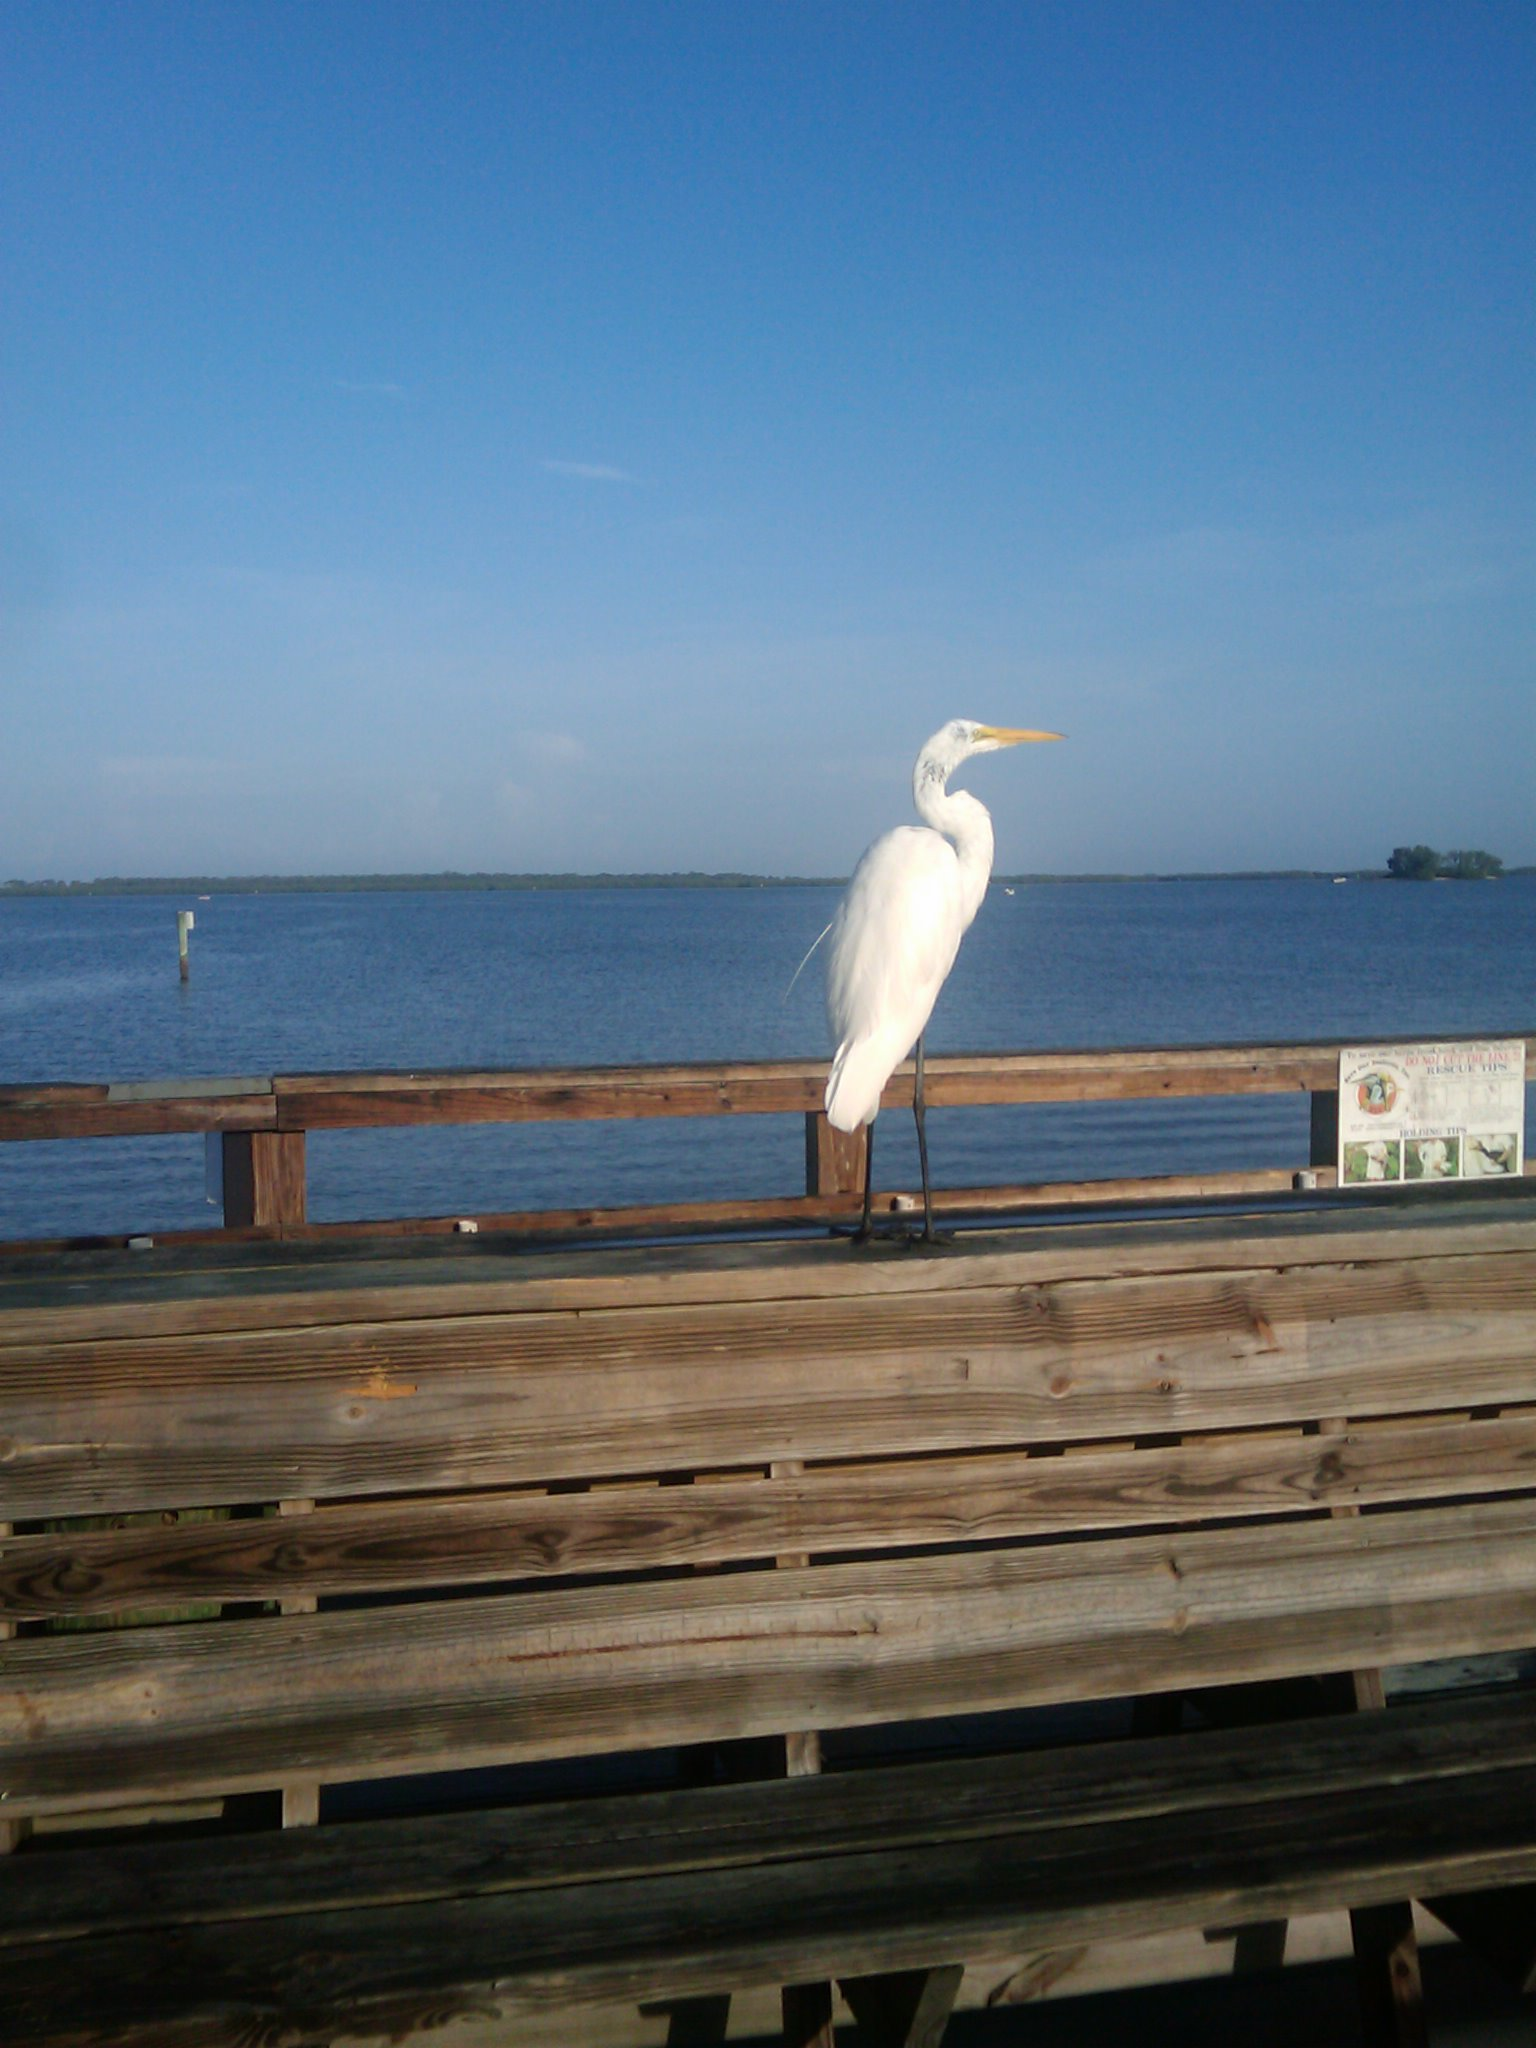 Are you not my heron, my mist, my morning tea?